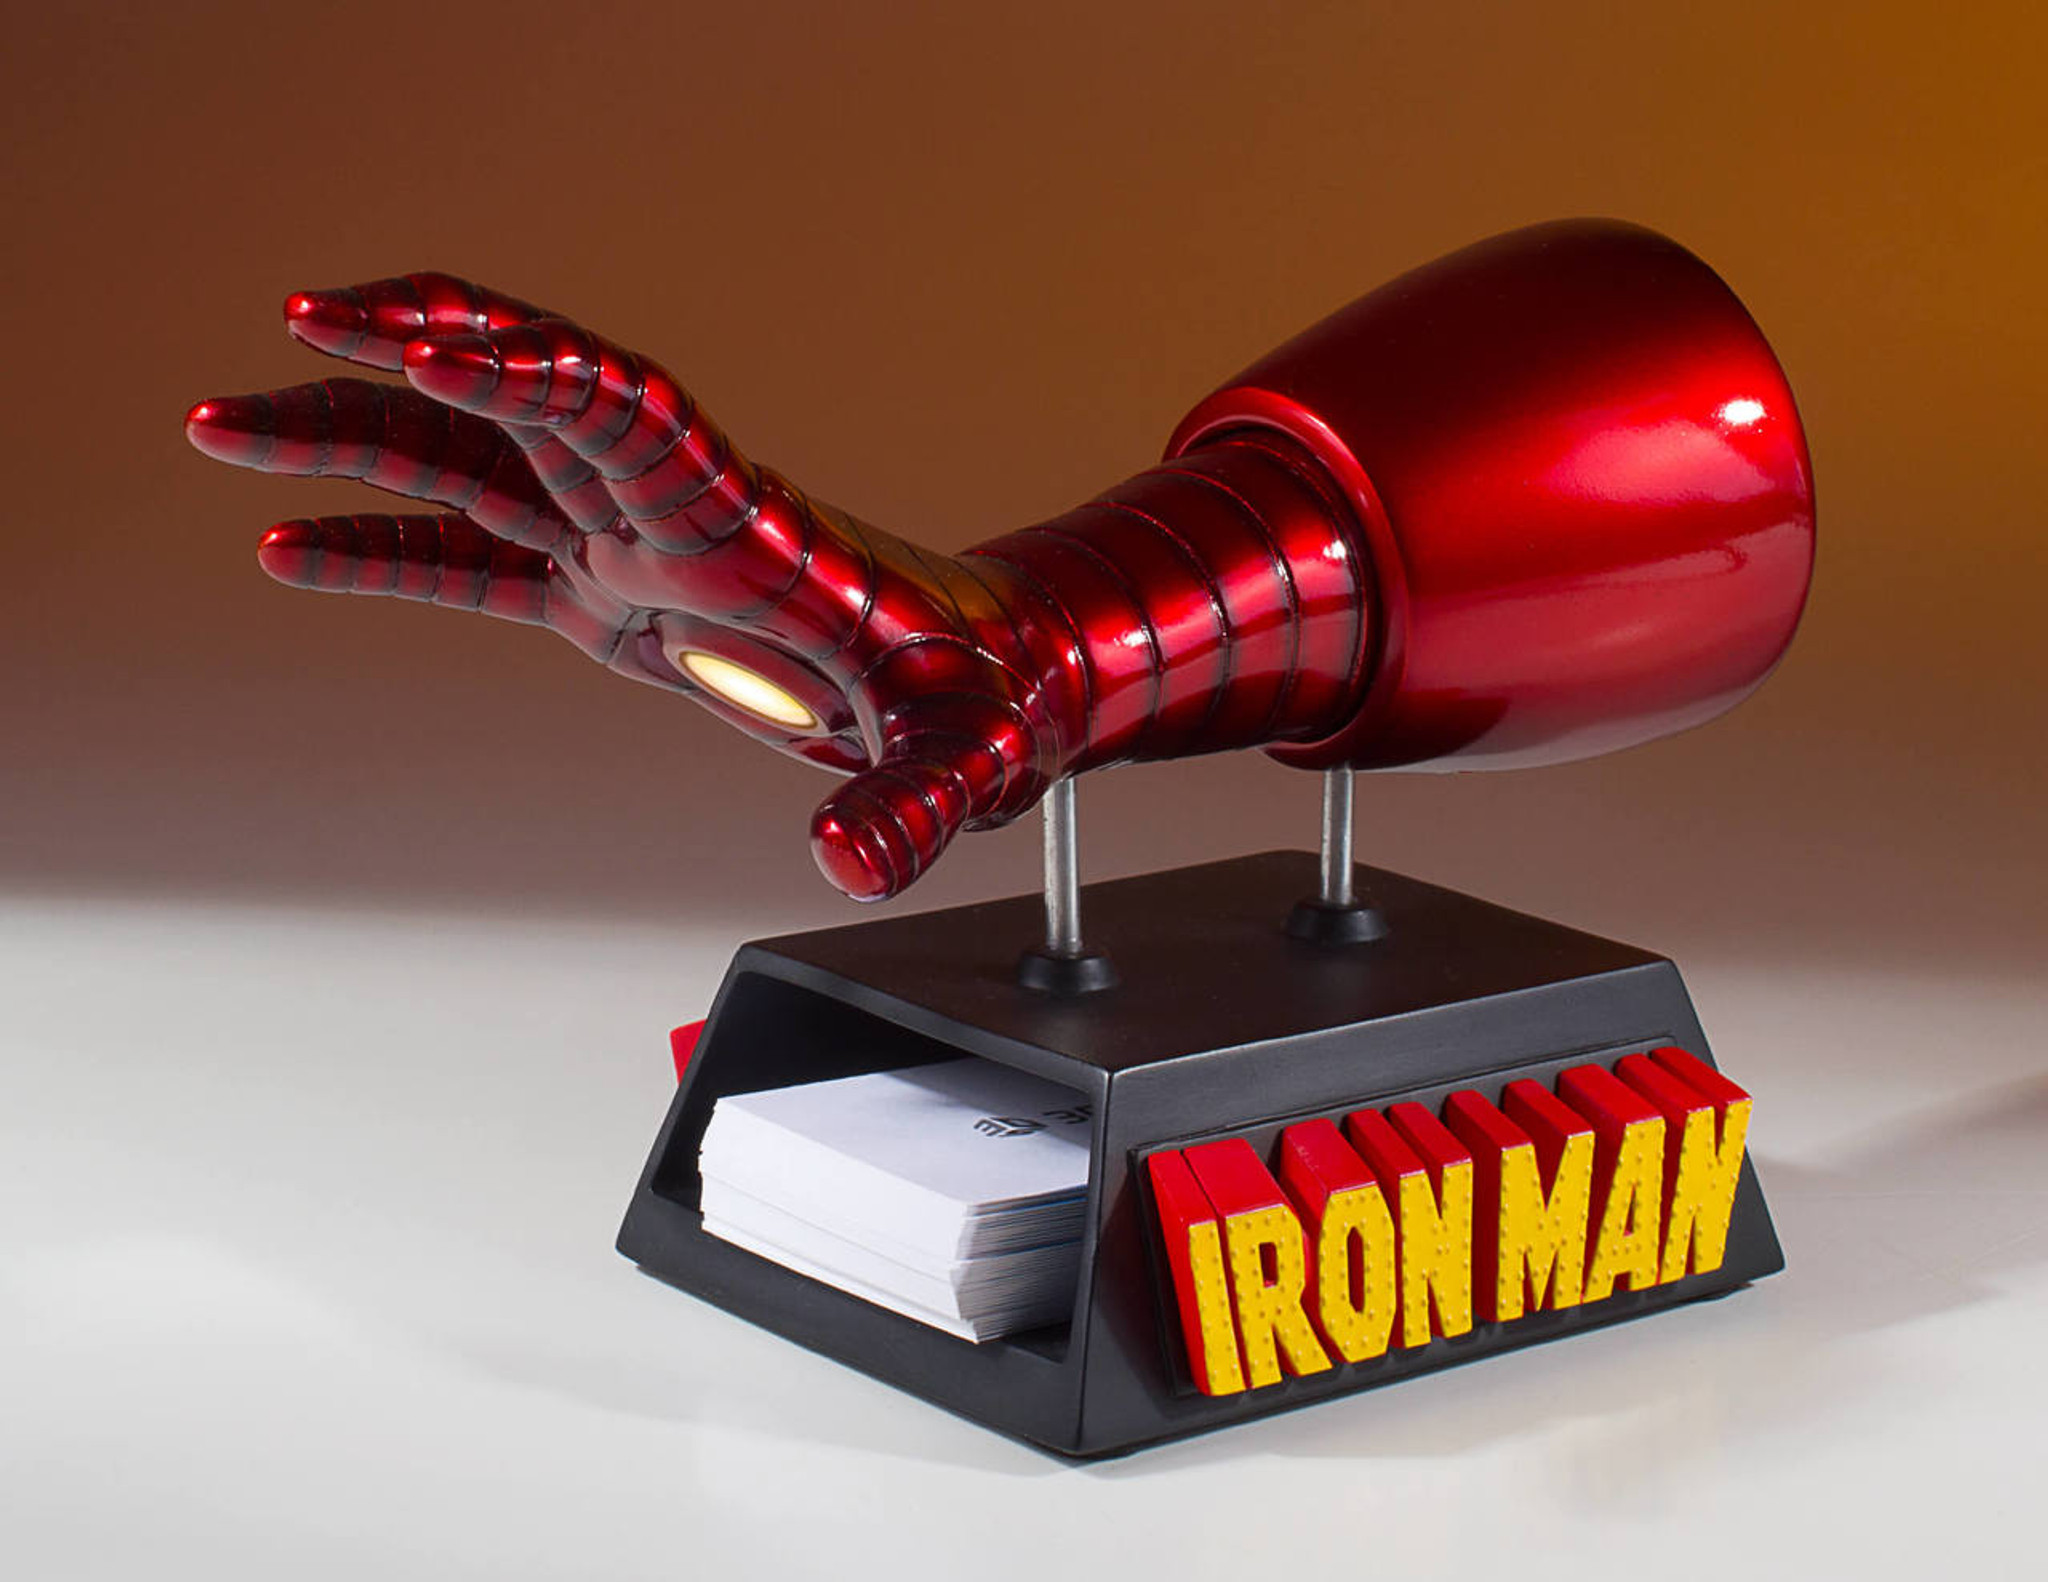 Iron Man Business Card Holder Desk Accessory - Gentle Giant Ltd